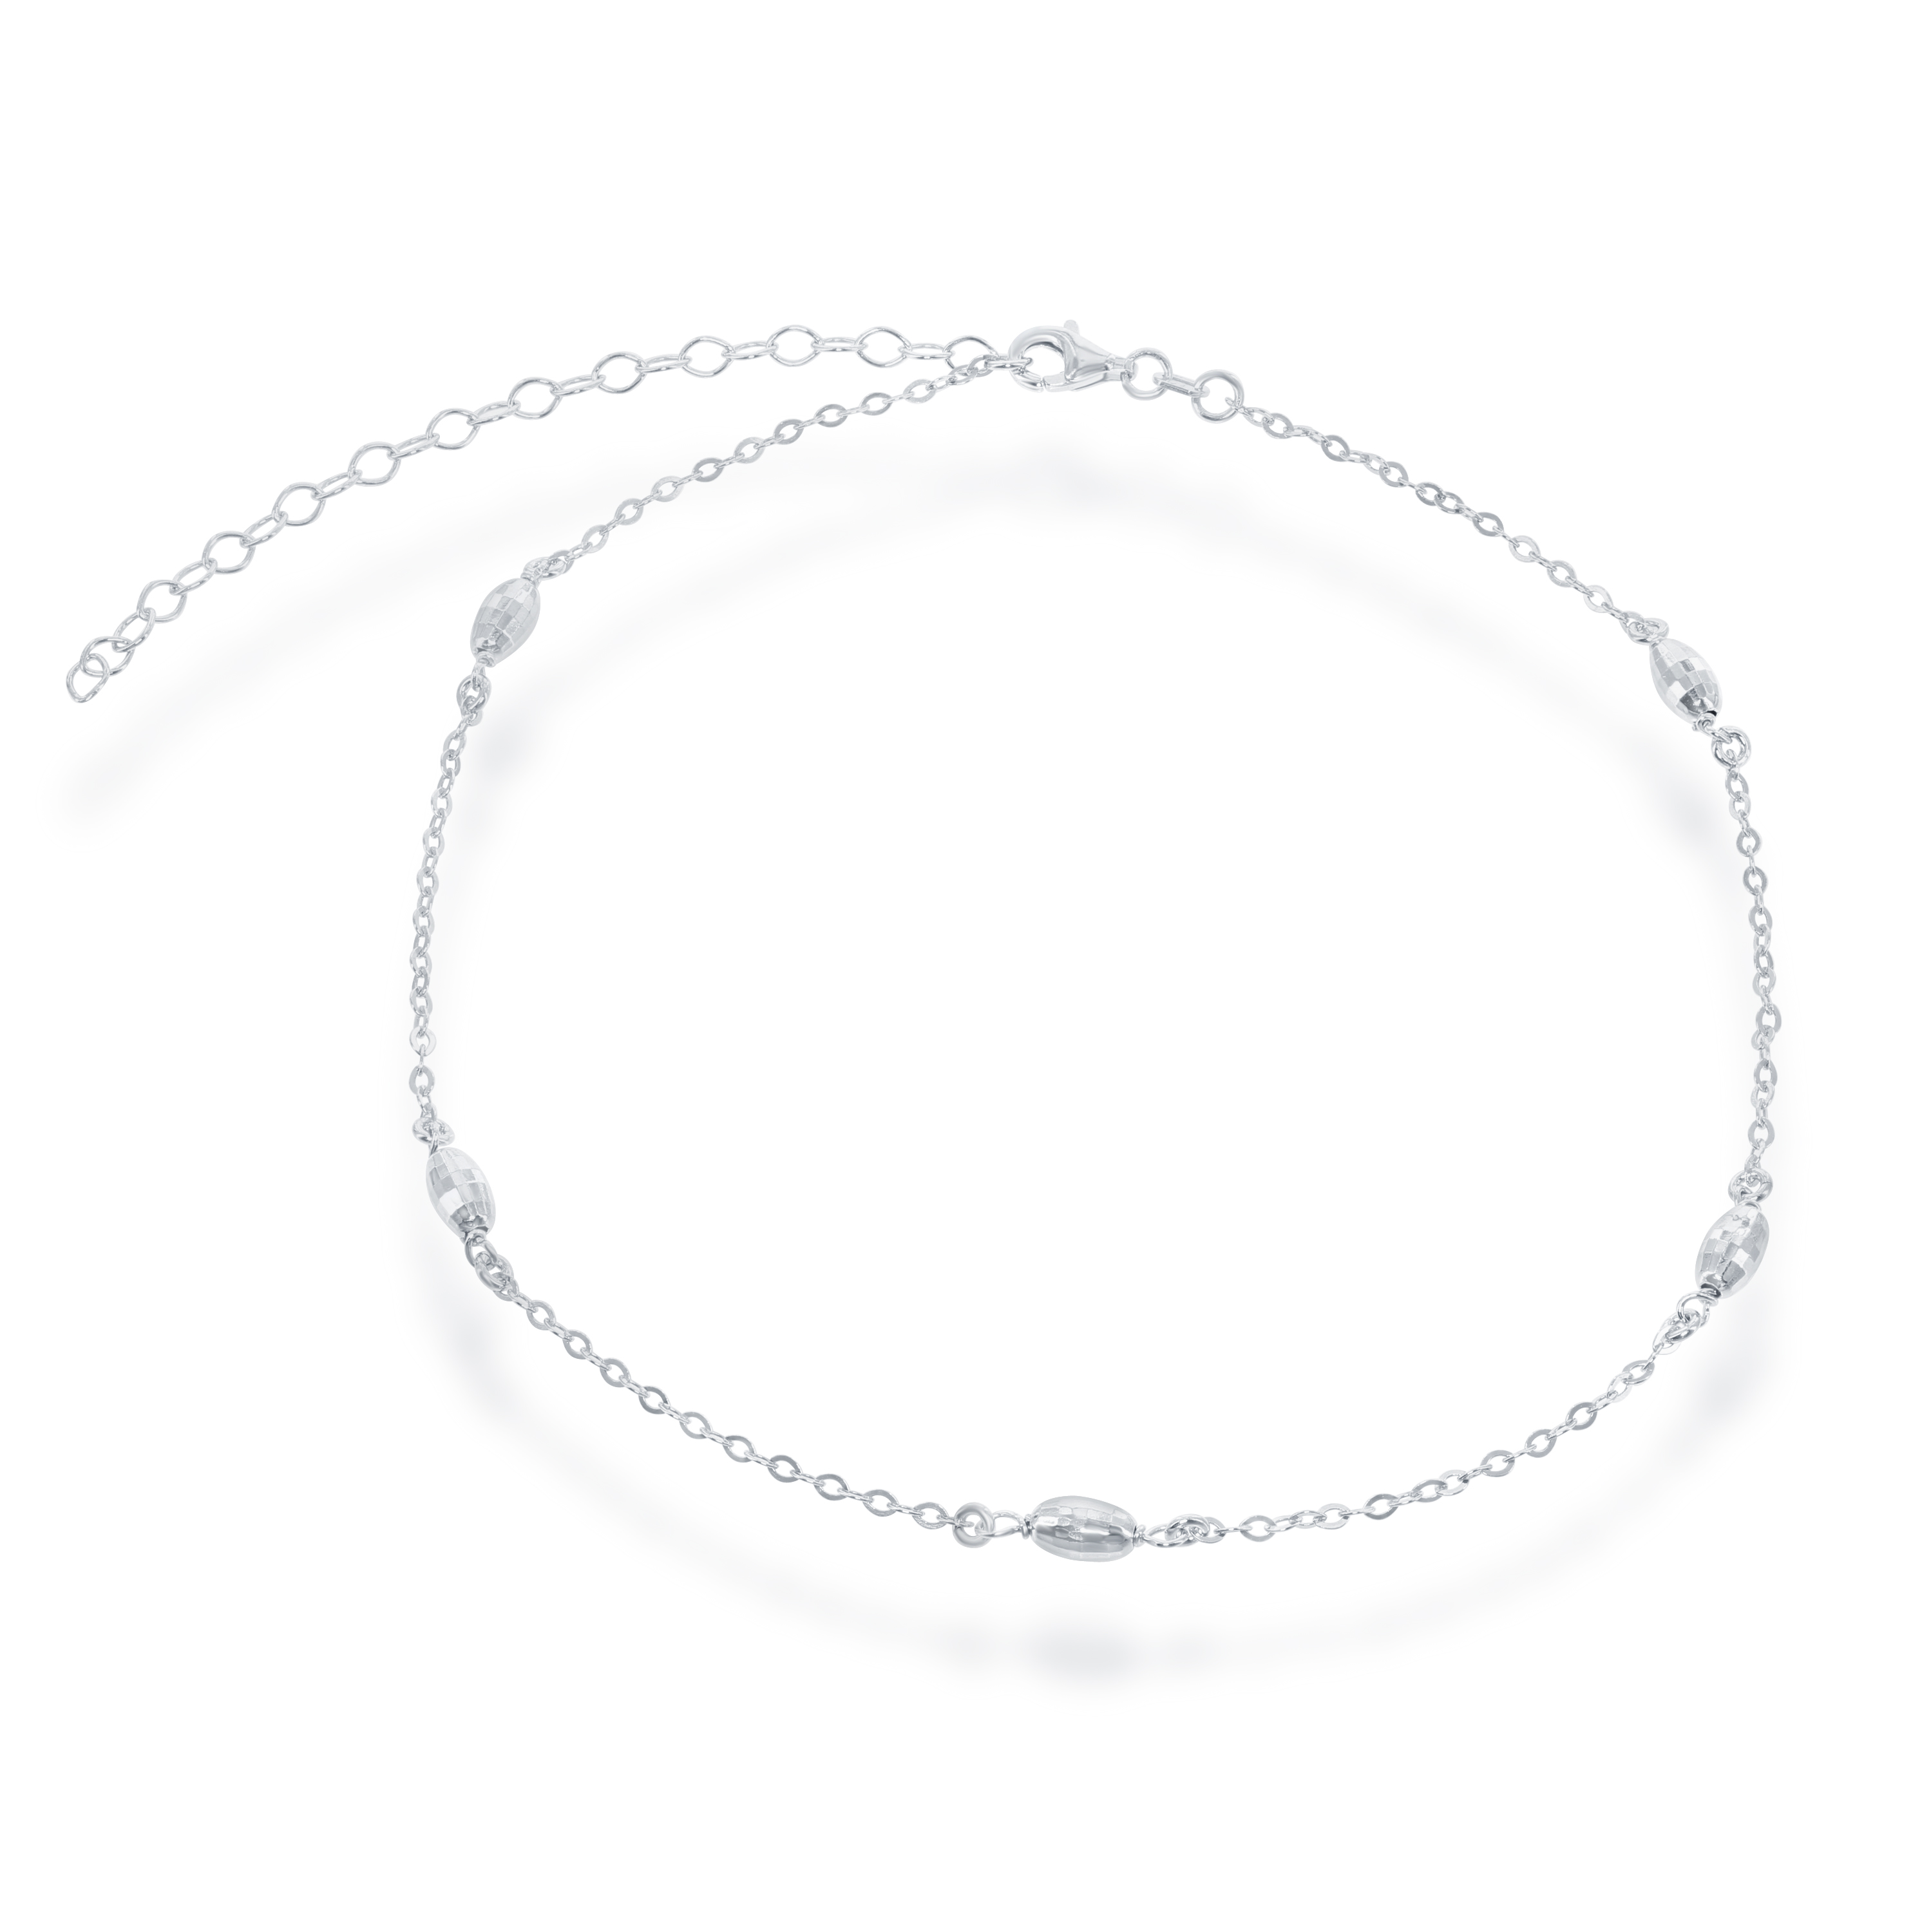 "Sterling Silver 12"" + 3"" Italian Diamond-Cut Oval MoonBeads Choker Necklace"